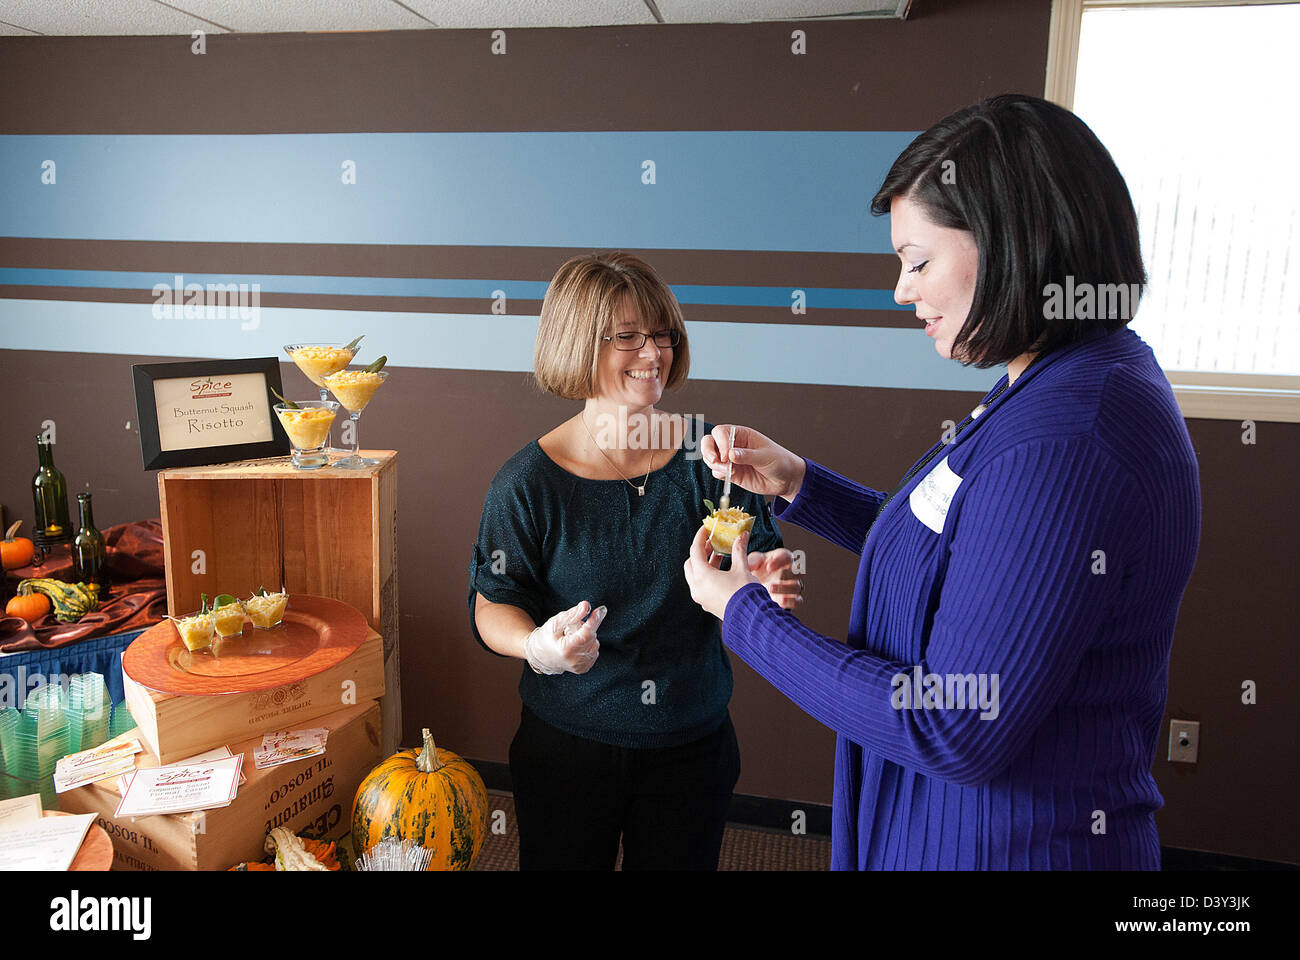 Business expo with women showing their products in CT USA - Stock Image